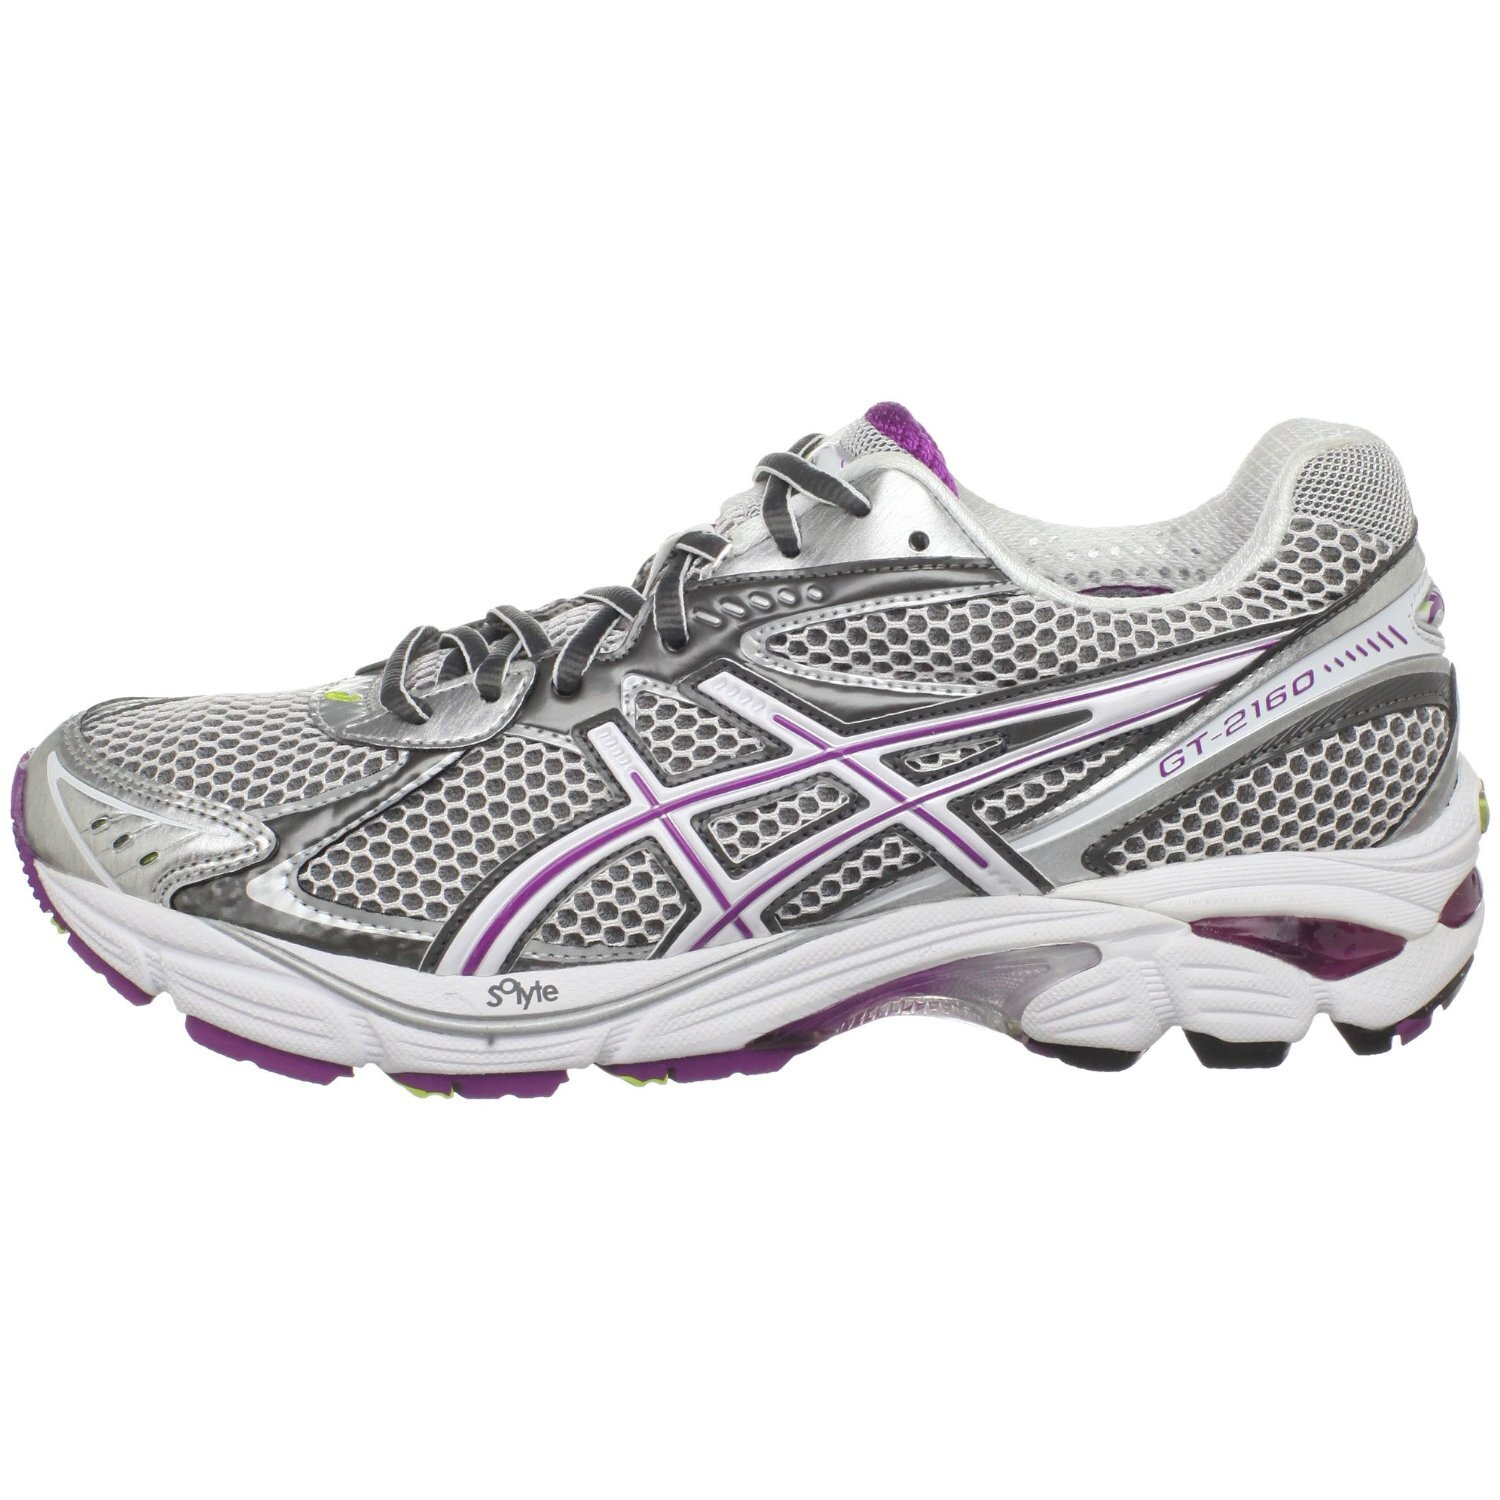 Ir a caminar hada Contrapartida  ASICS GT-2160 Running Shoes in Carbon/White/Plum — UFO No More